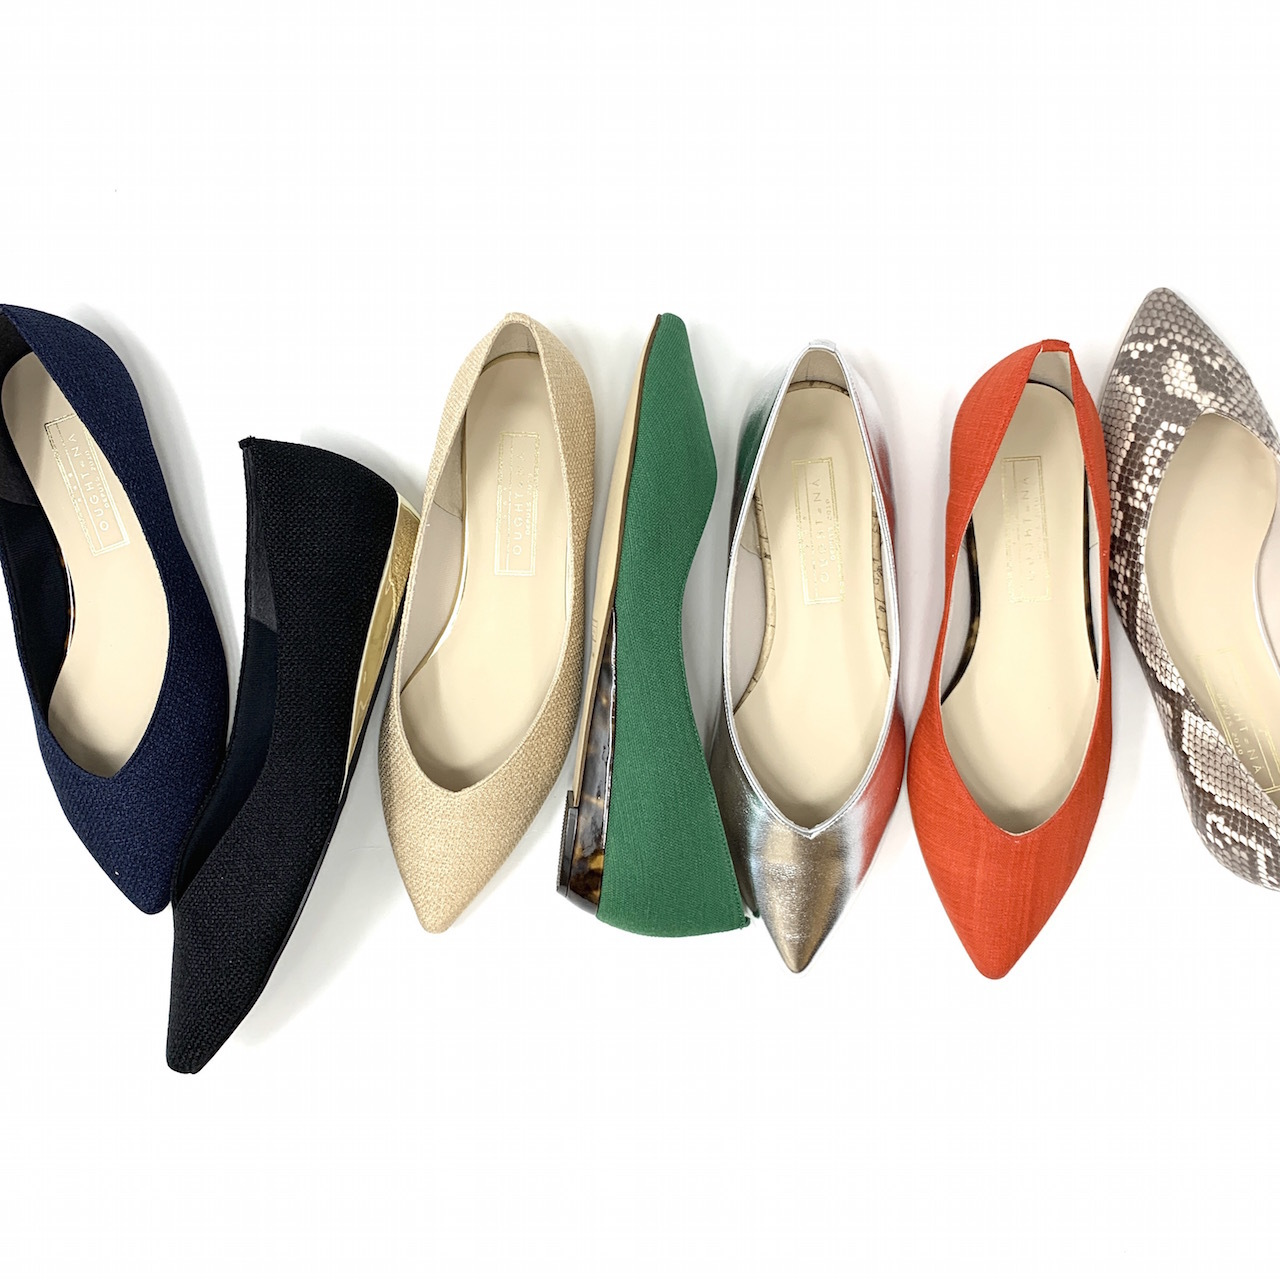 Pointed Linenflat Pumps | ポインテッド リネン フラットパンプス #ot1120 |【Ought=na】|madeinjapan|日本製